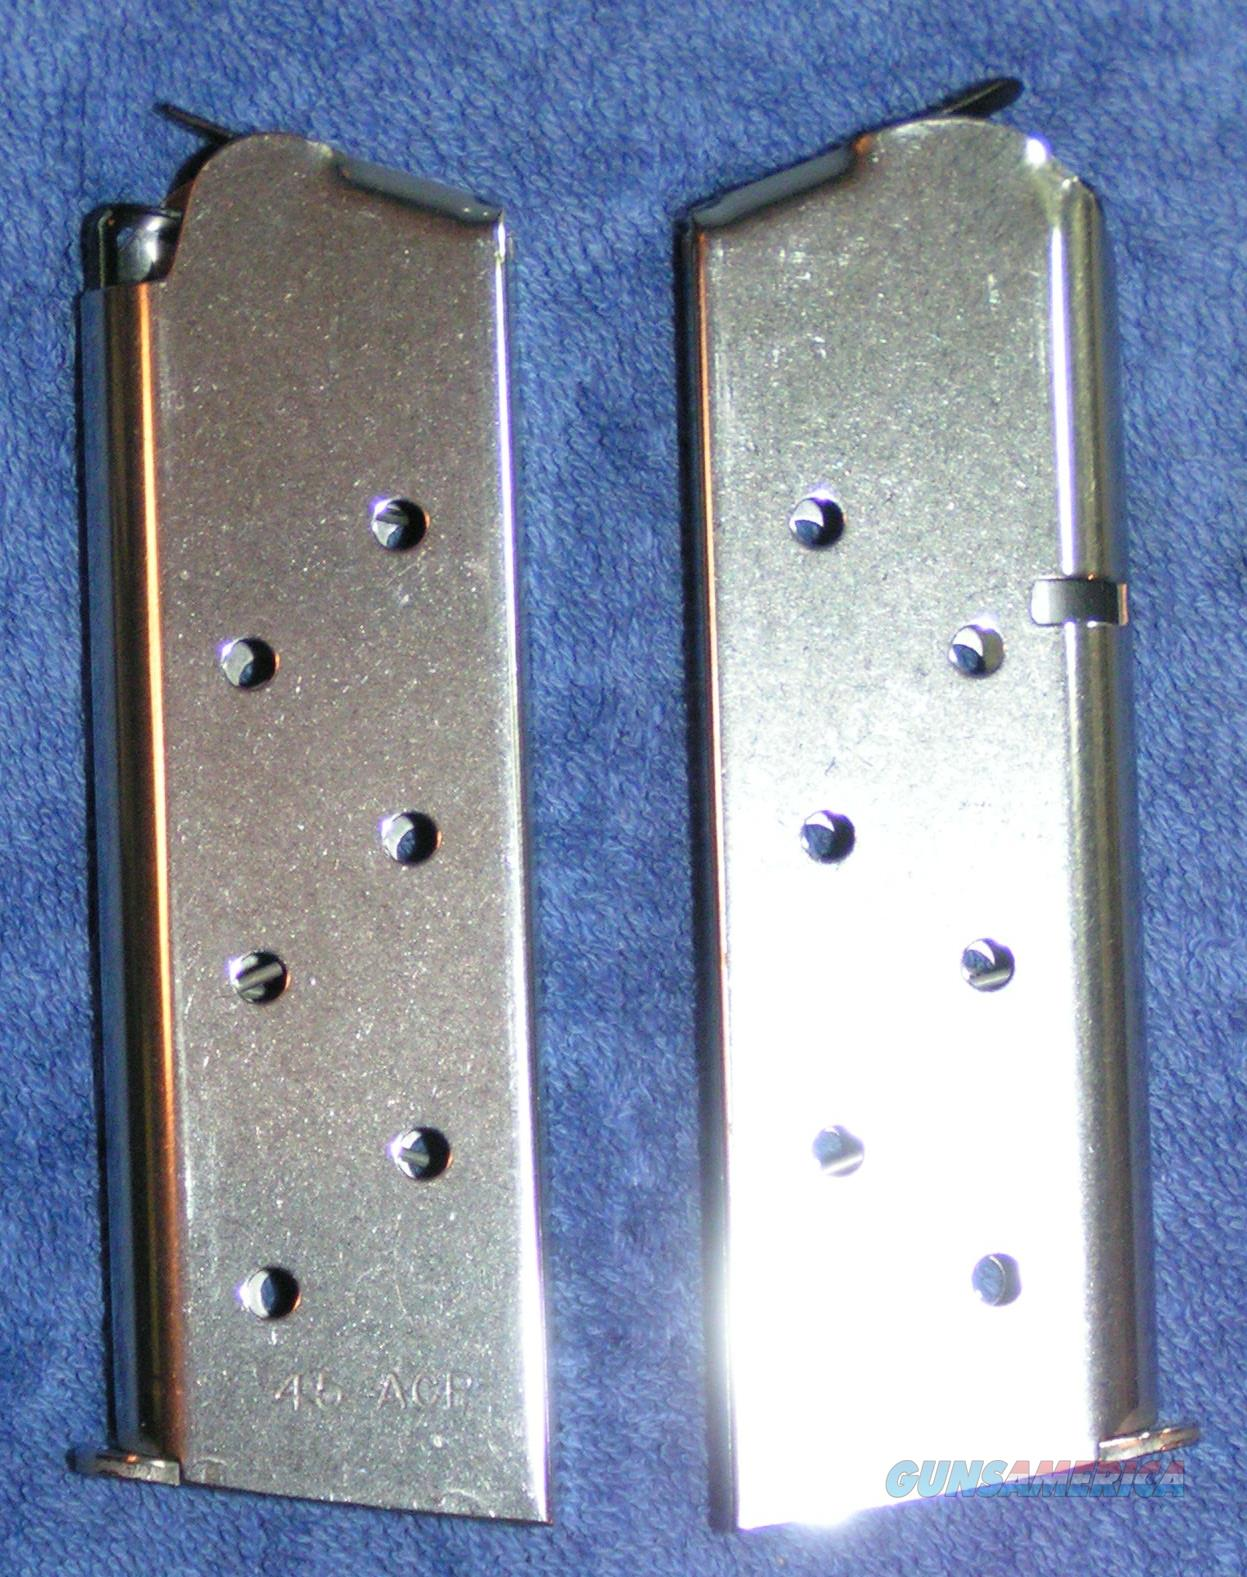 2 Colt officer's mags 7 rd stainless $37 each mag X 2  officers  Non-Guns > Magazines & Clips > Pistol Magazines > Other